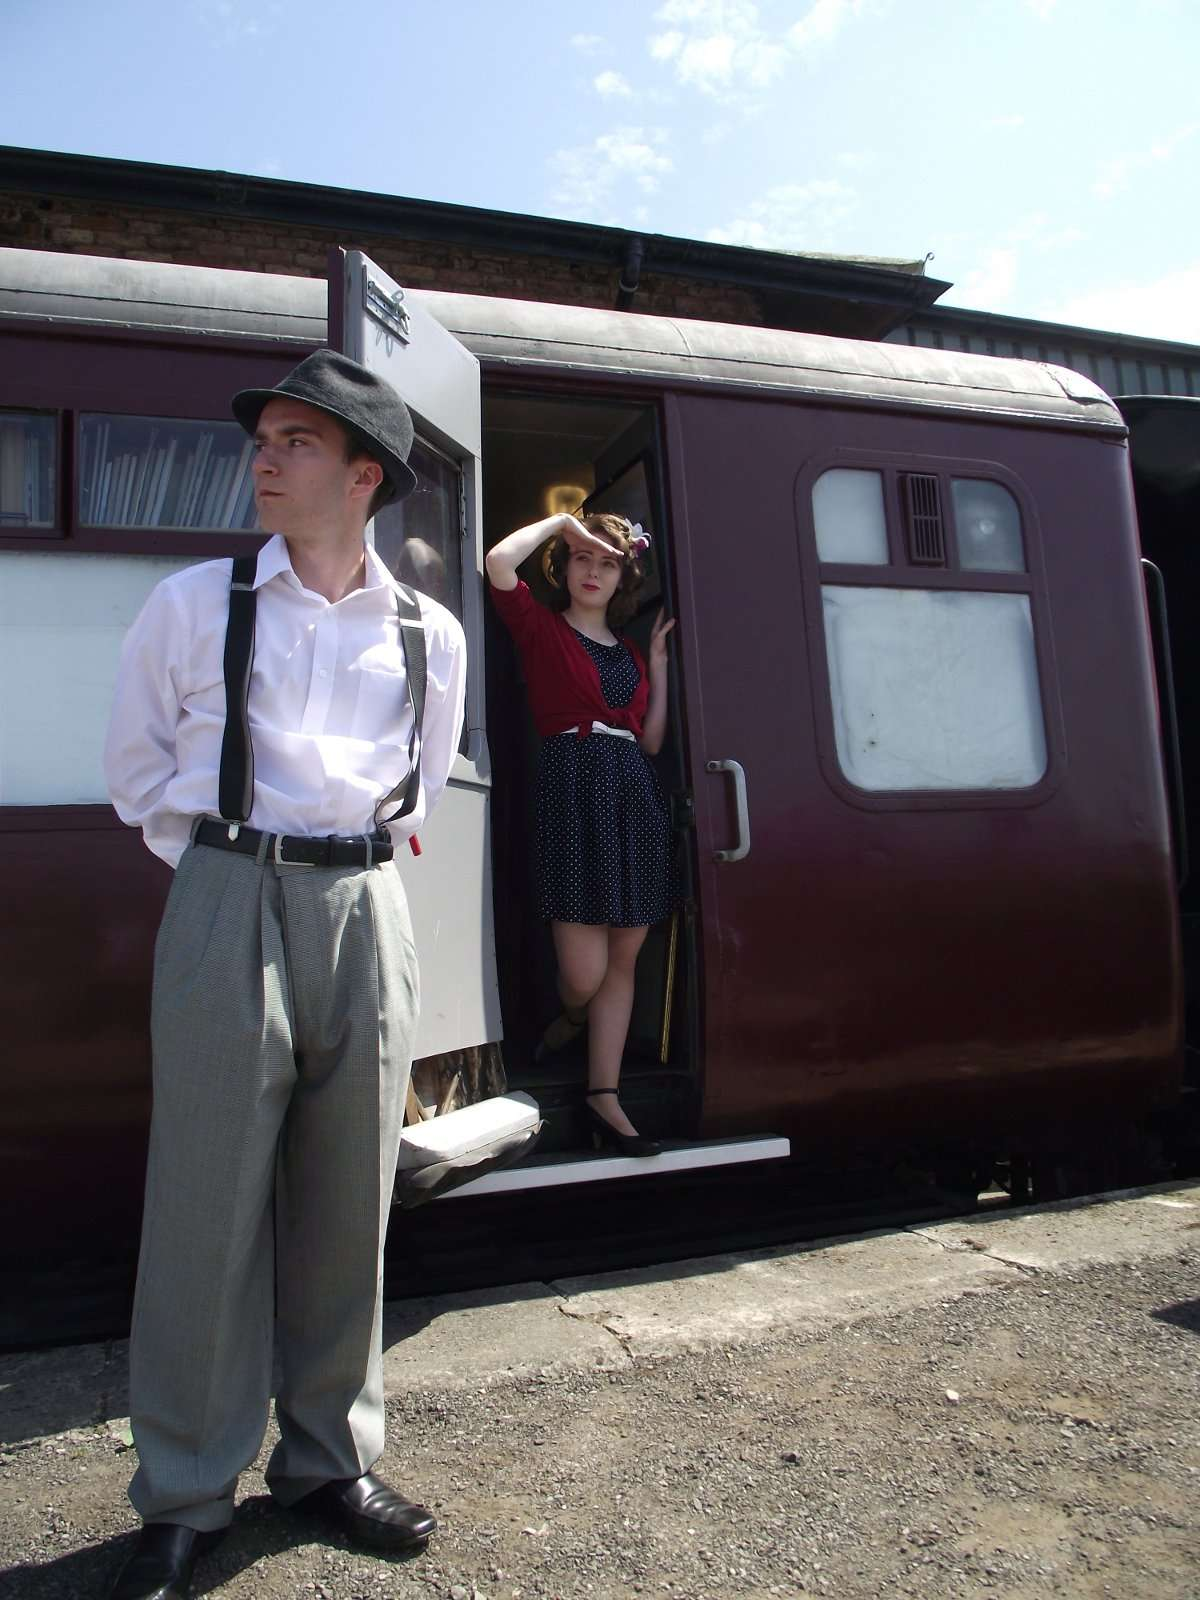 All aboard for a murder mystery at Wensleydale Railway